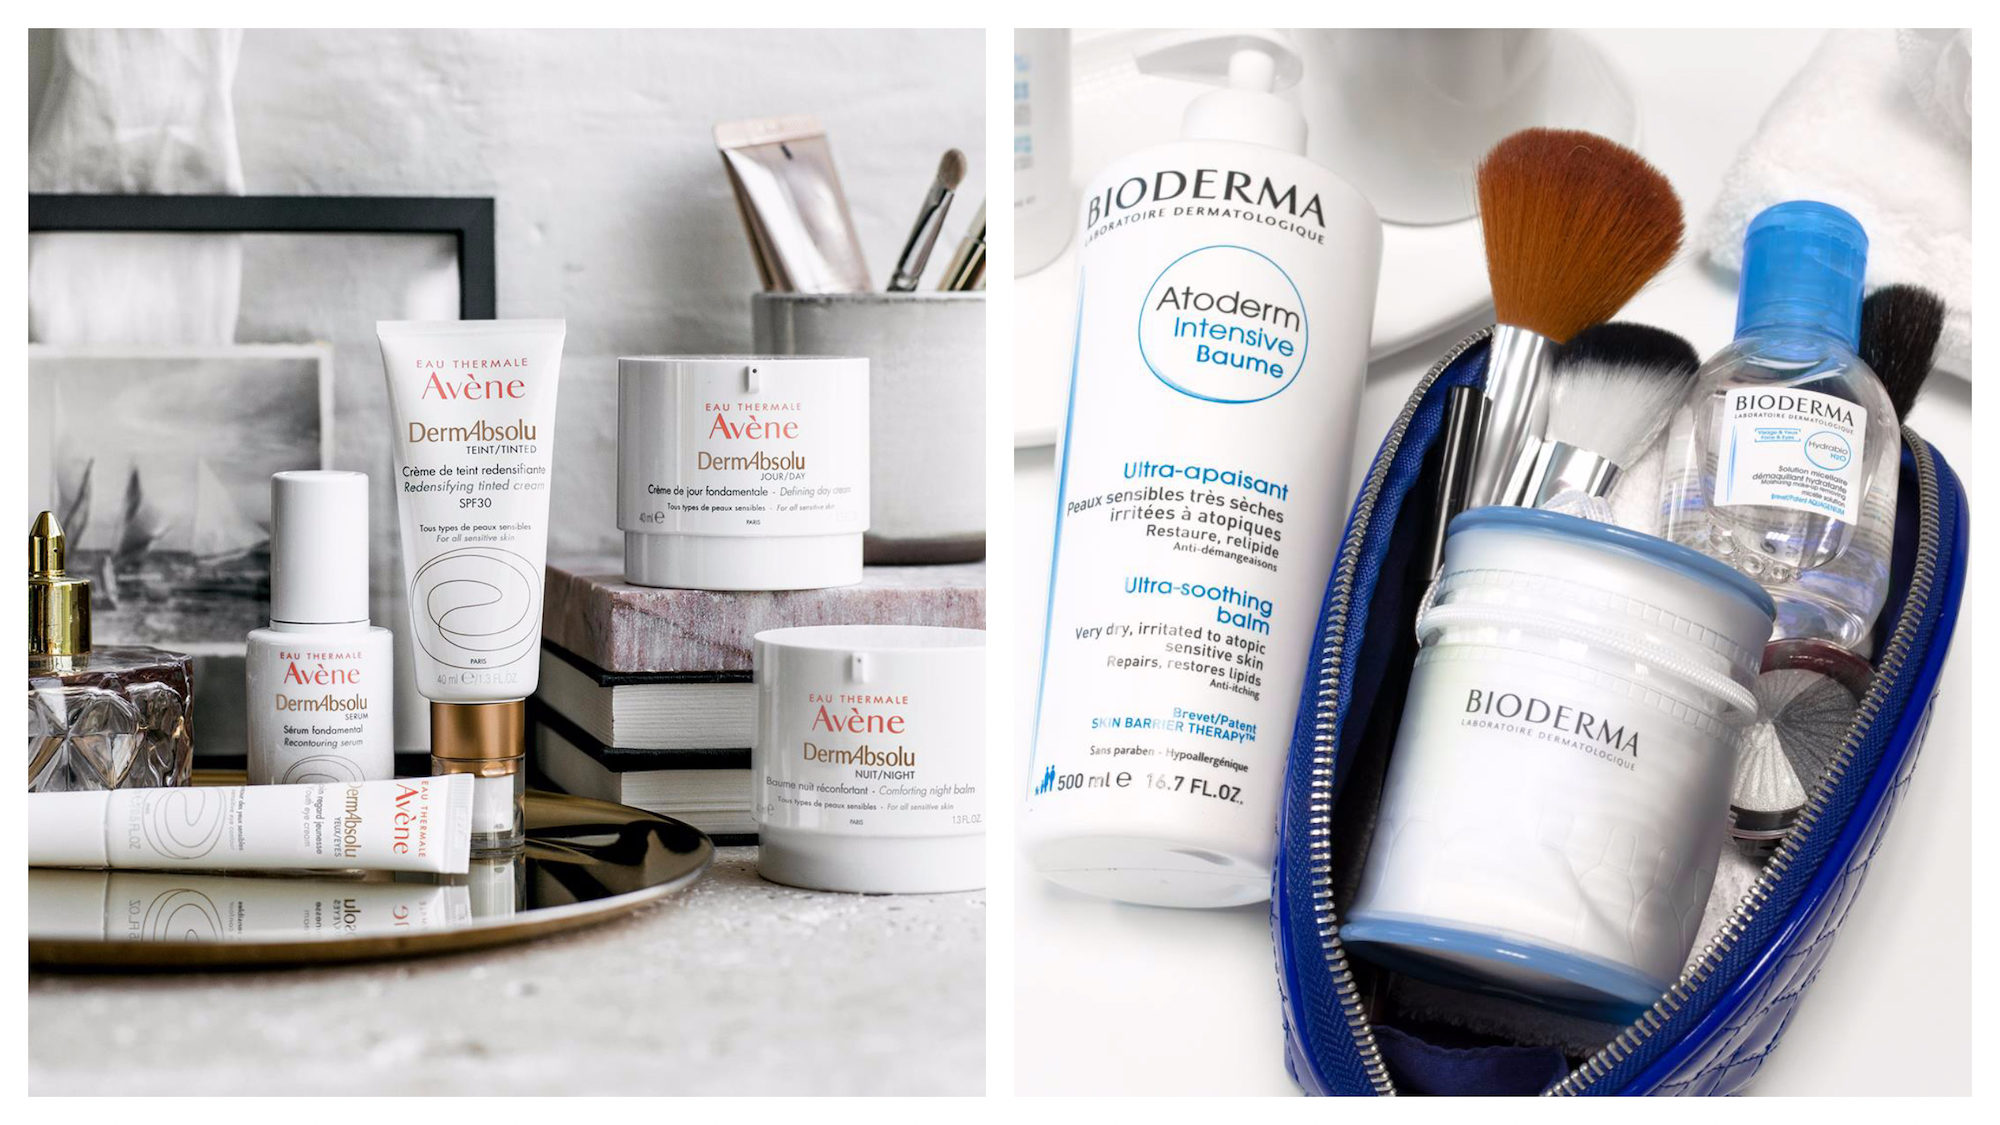 The French pharmacy, a haven for buying French beauty products for less in Paris, like go-to brand Avène skincare (left) and Bioderma beauty products, which also come in travel size (right).